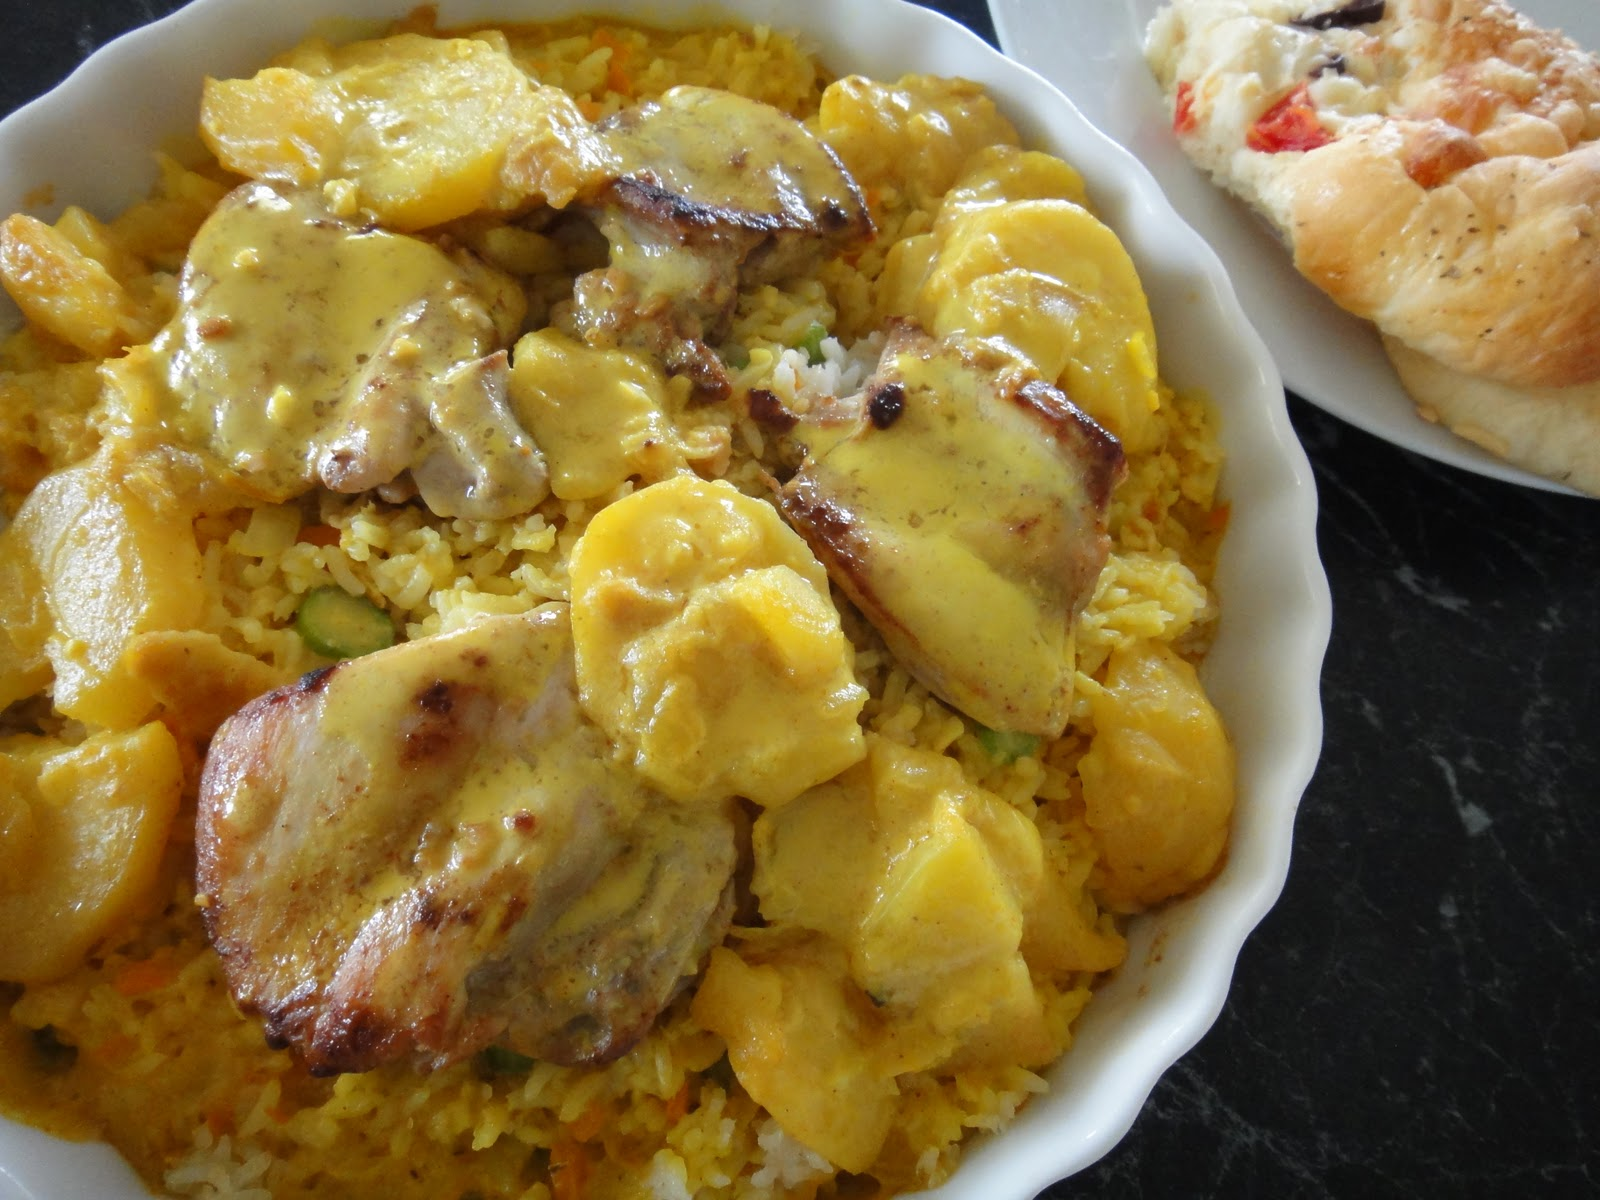 Veronica's Kitchen: Baked Portuguese Chicken and Rice (Part 2)